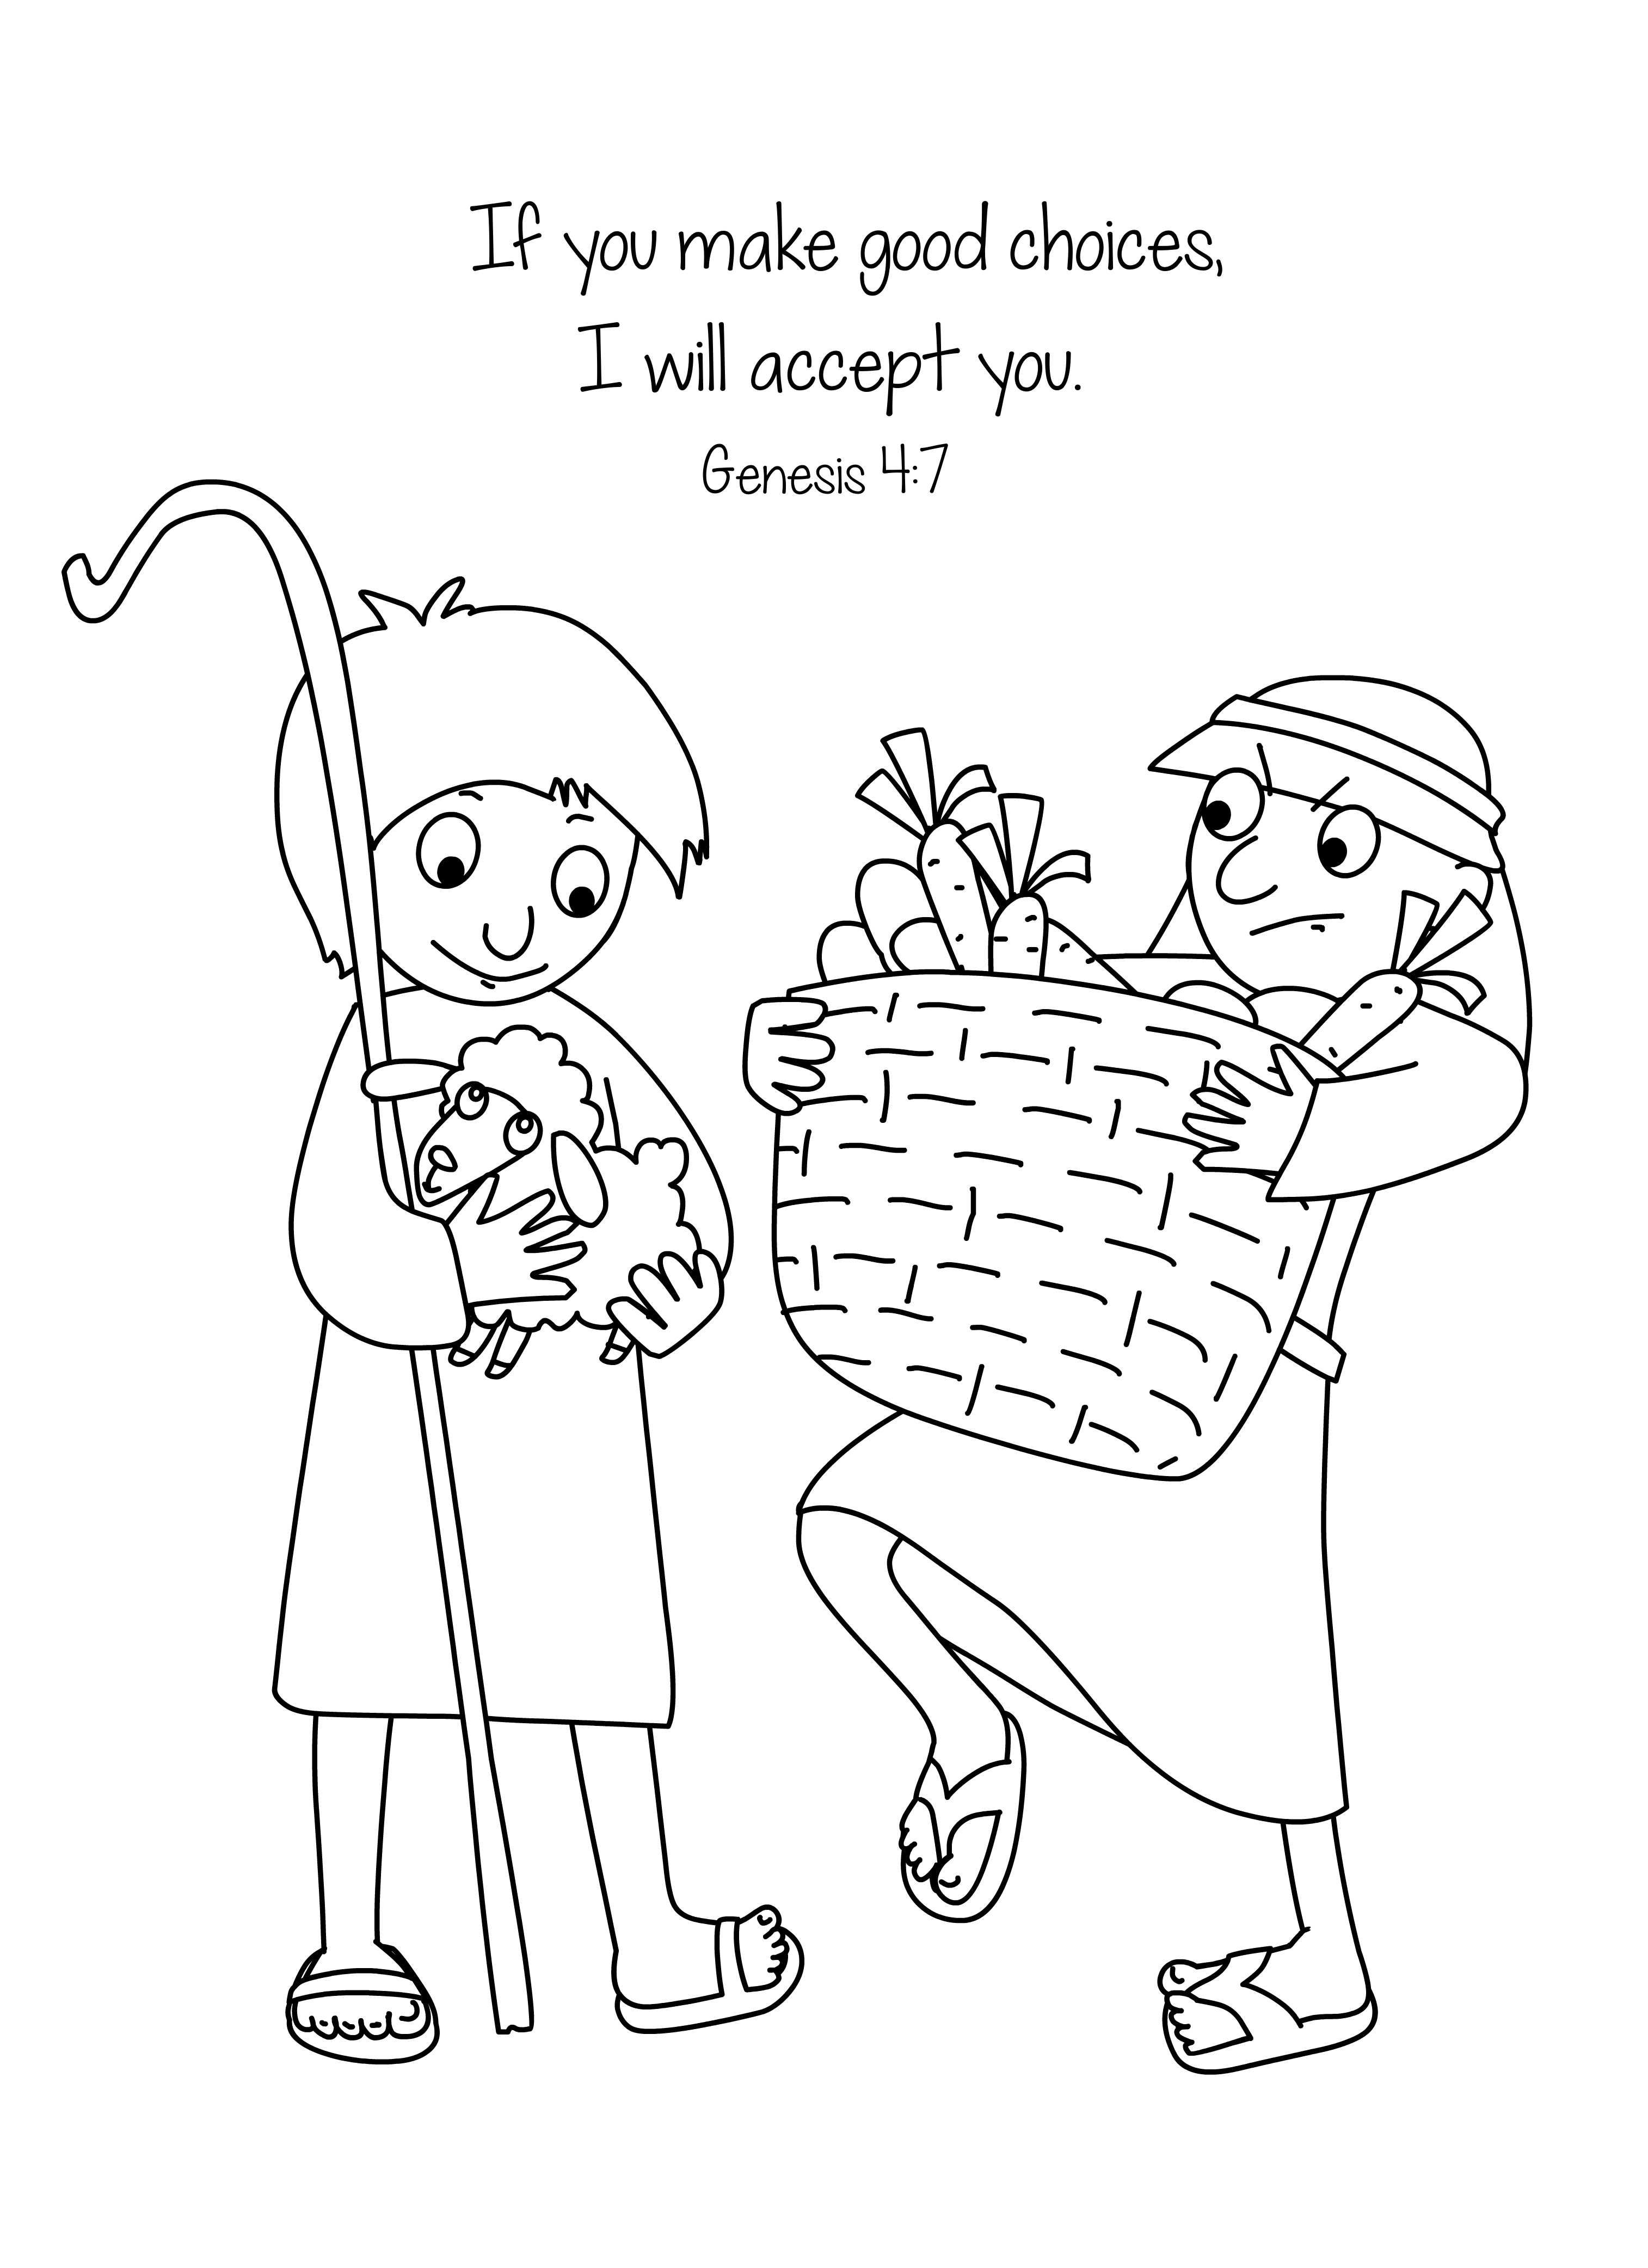 Cain And Abel Bible Coloring Page Free Download